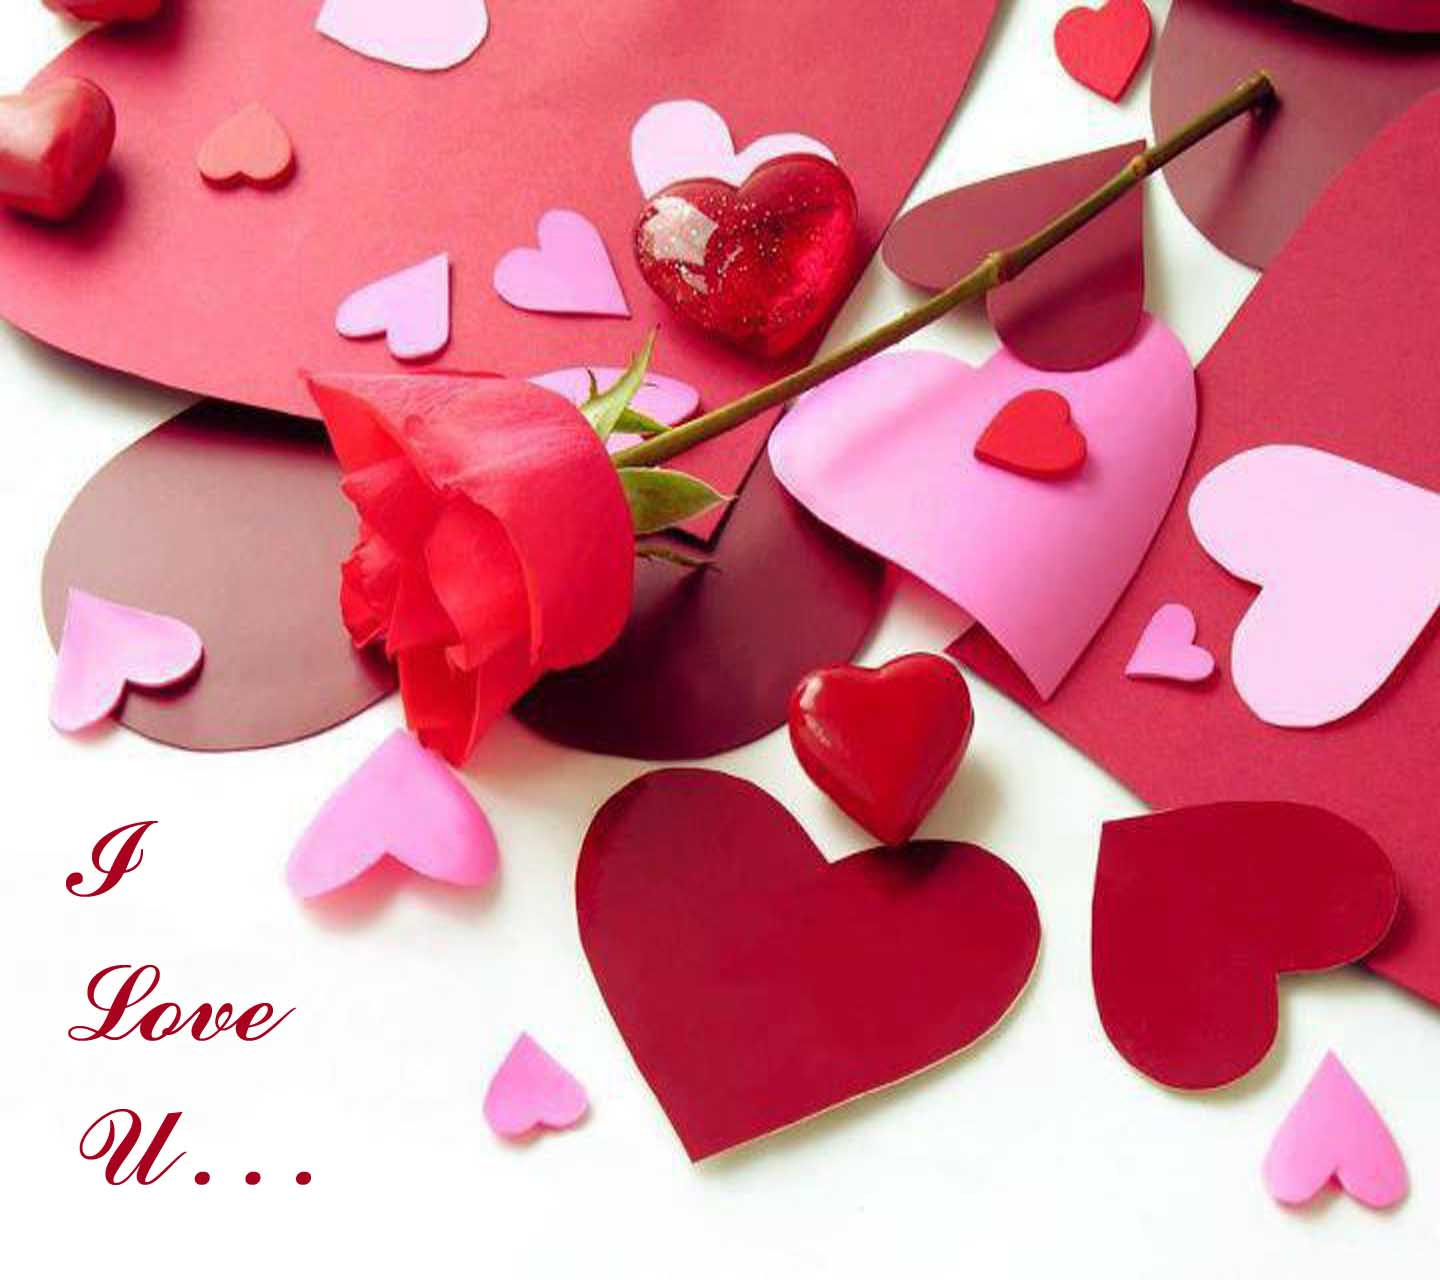 I Love You Images Wallpapers Wallpaper Cave